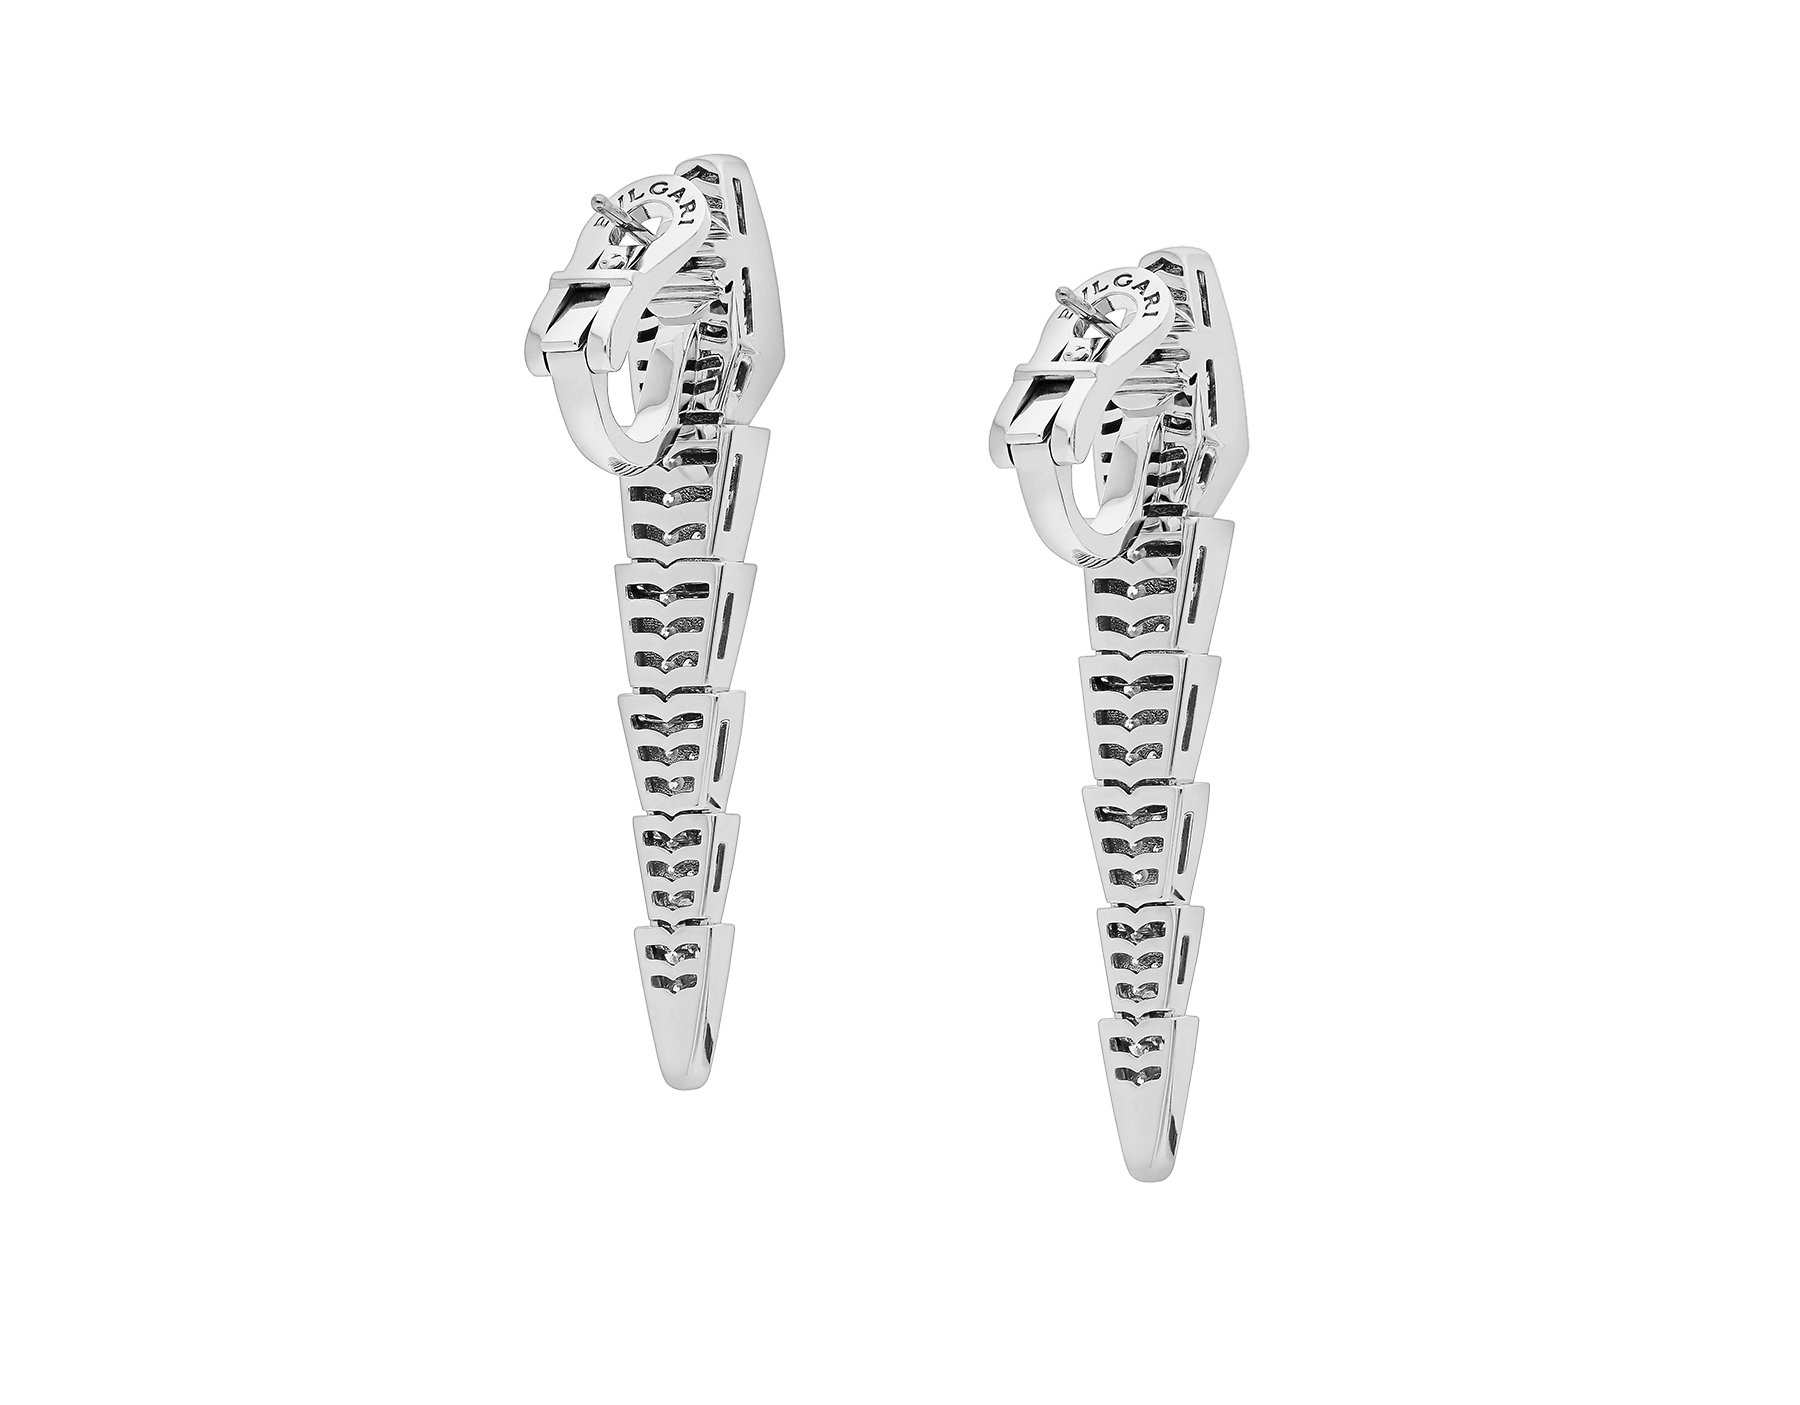 Serpenti earrings in 18 kt white gold, set with full pavé diamonds. 348320 image 3